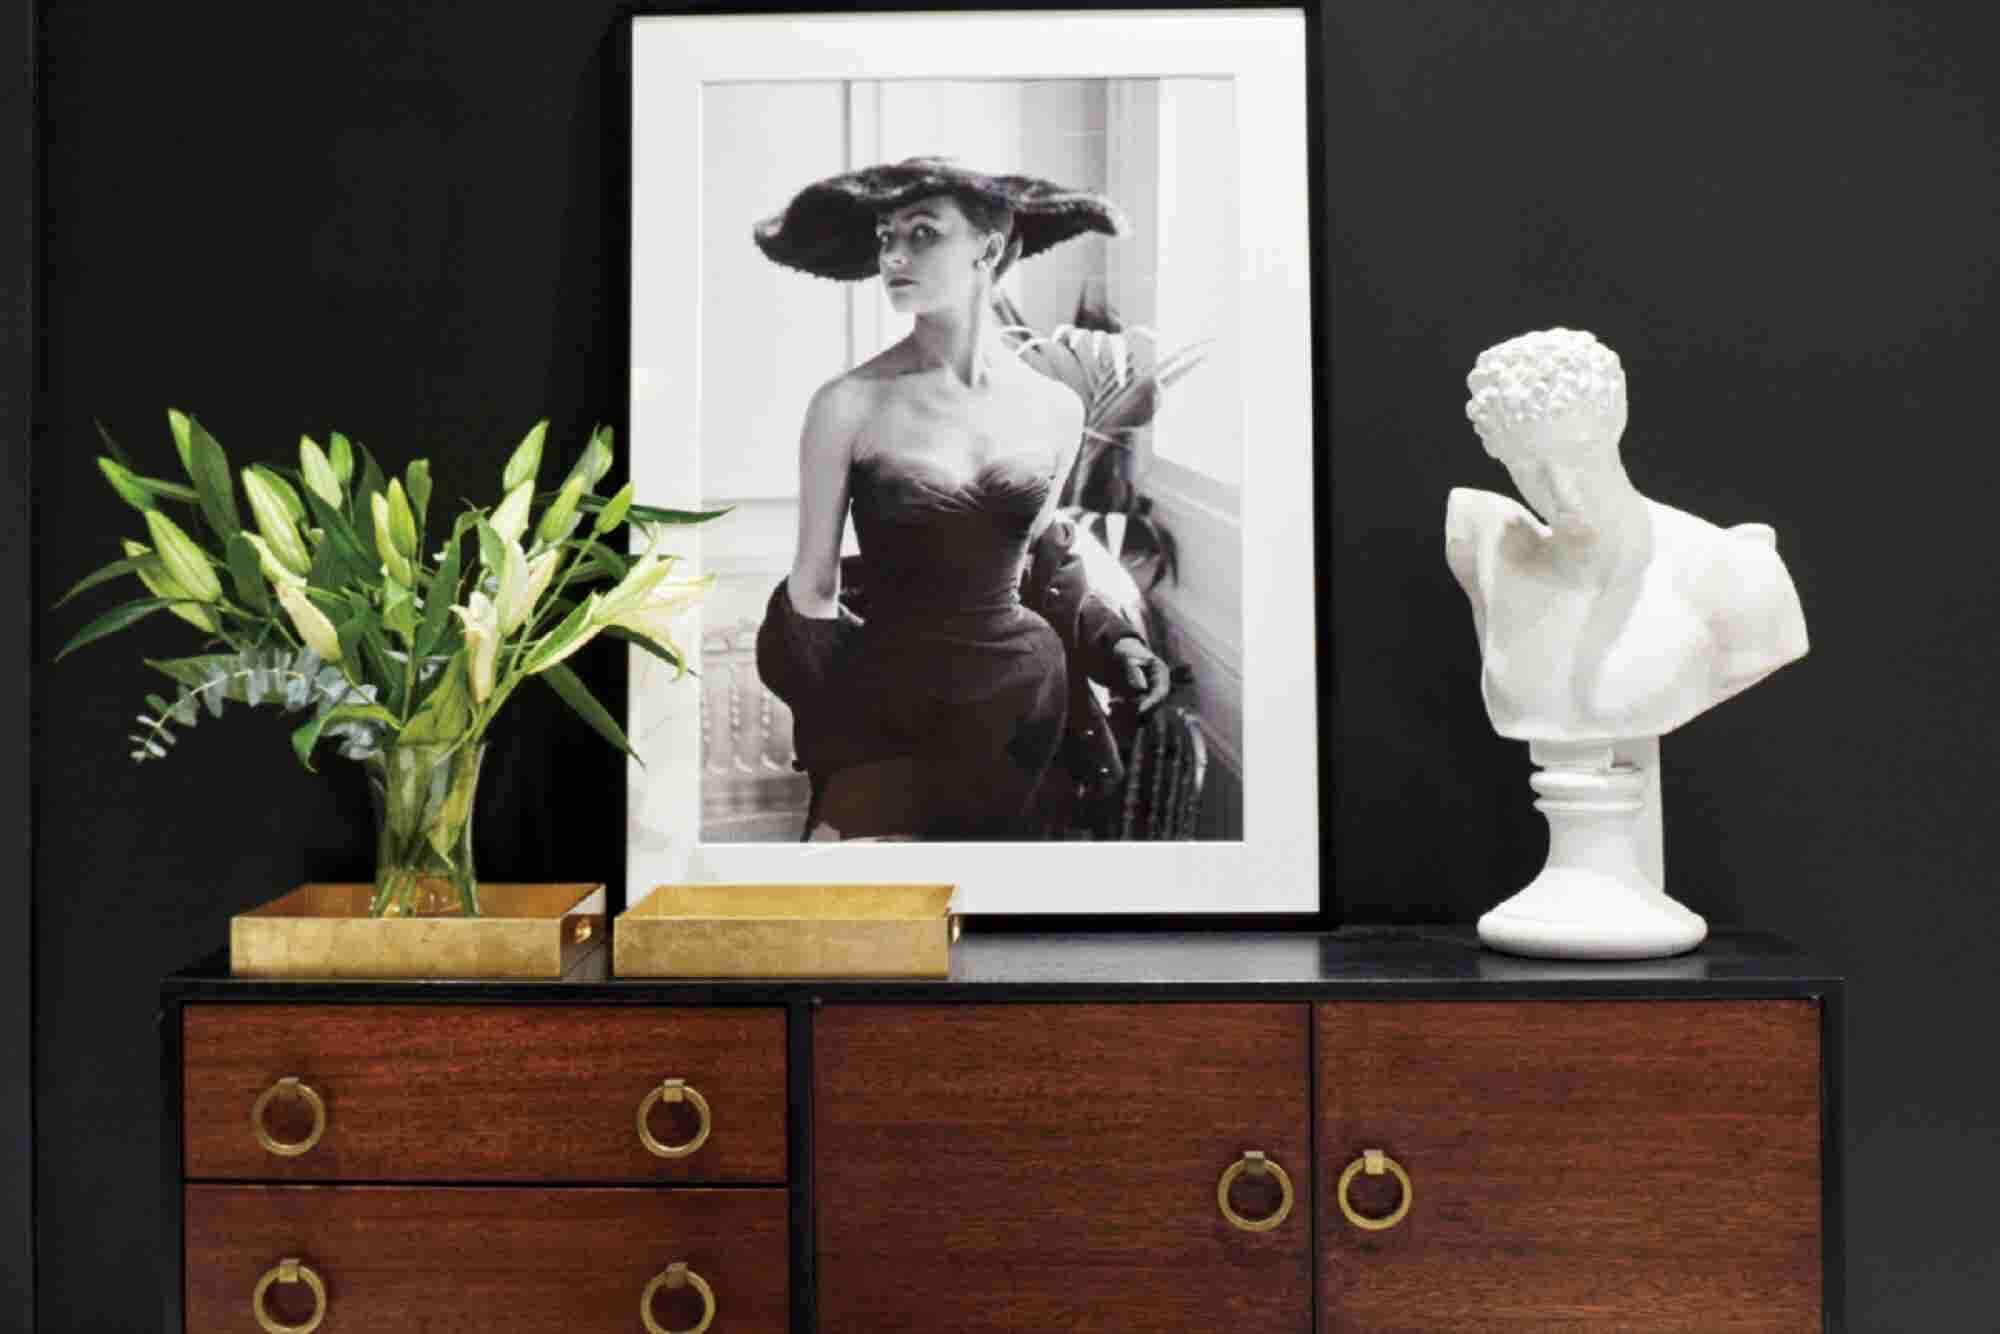 How This Site Became the Go-To Marketplace for Rare and Antique Goods